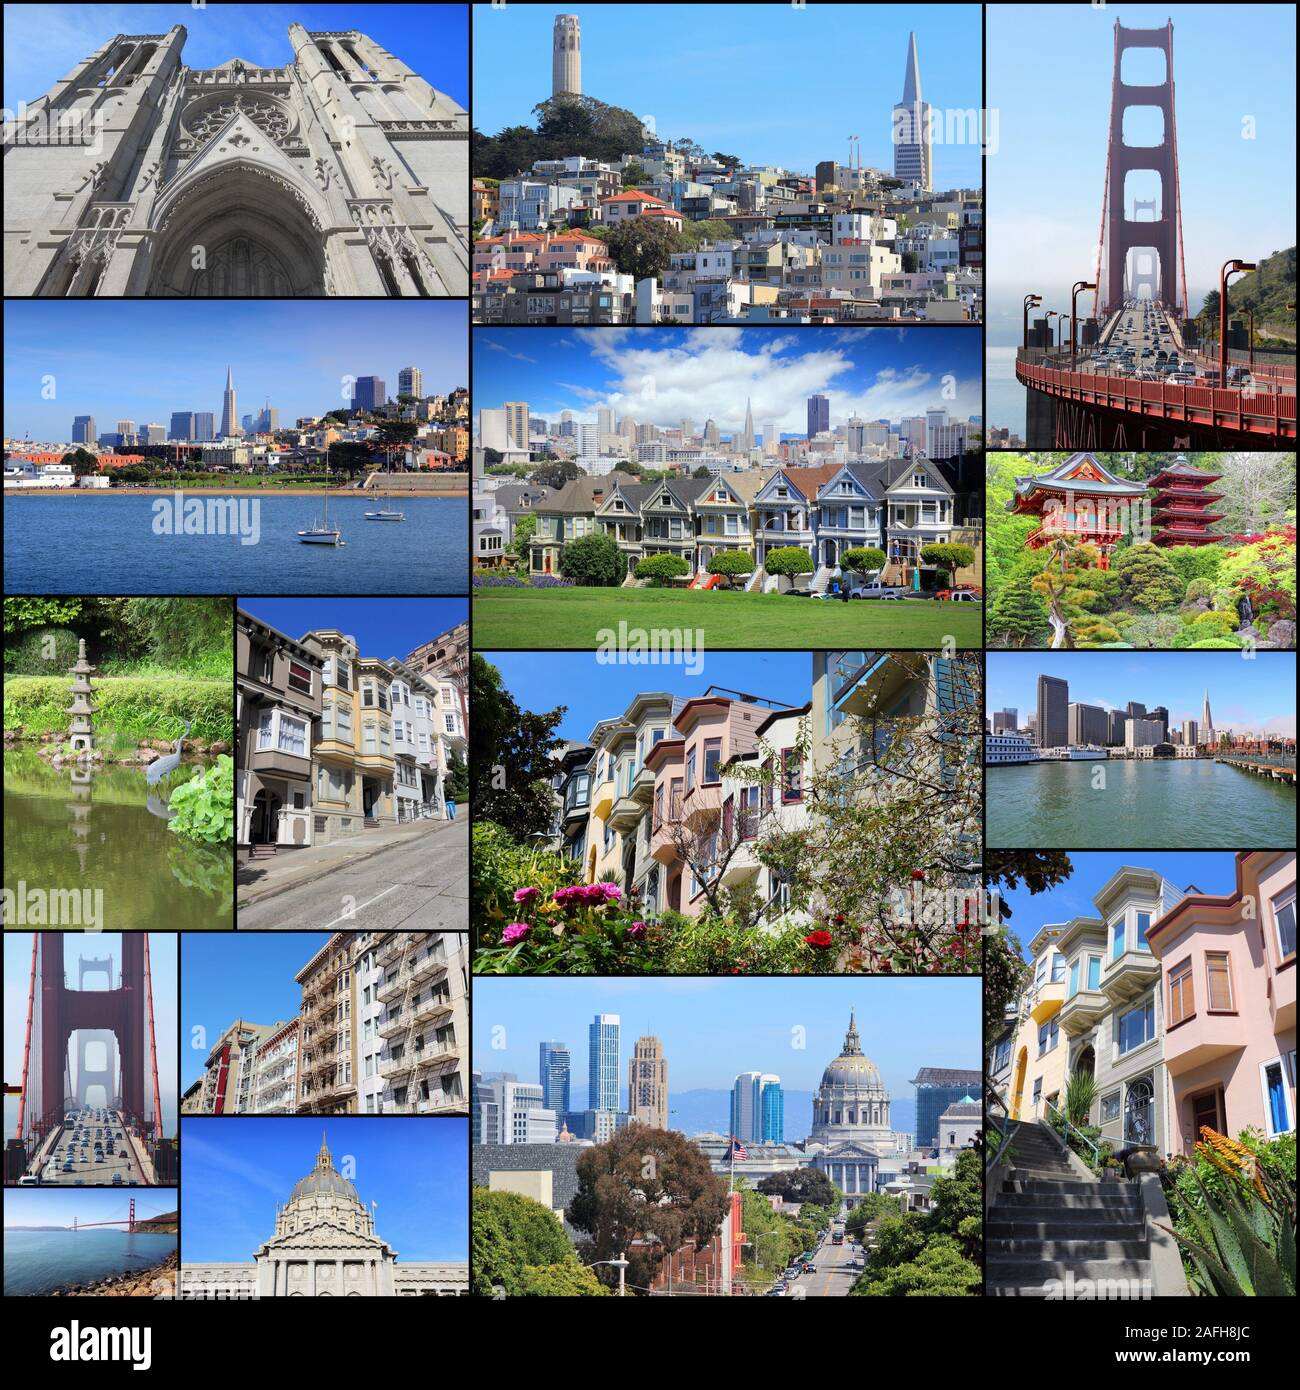 Collage Bilder San Francisco Collage - Photo Collection With Alamo Square, Nob Hill, Telegraph Hill, Grace Cathedral And Golden Gate Bridge Stock Photo - Alamy